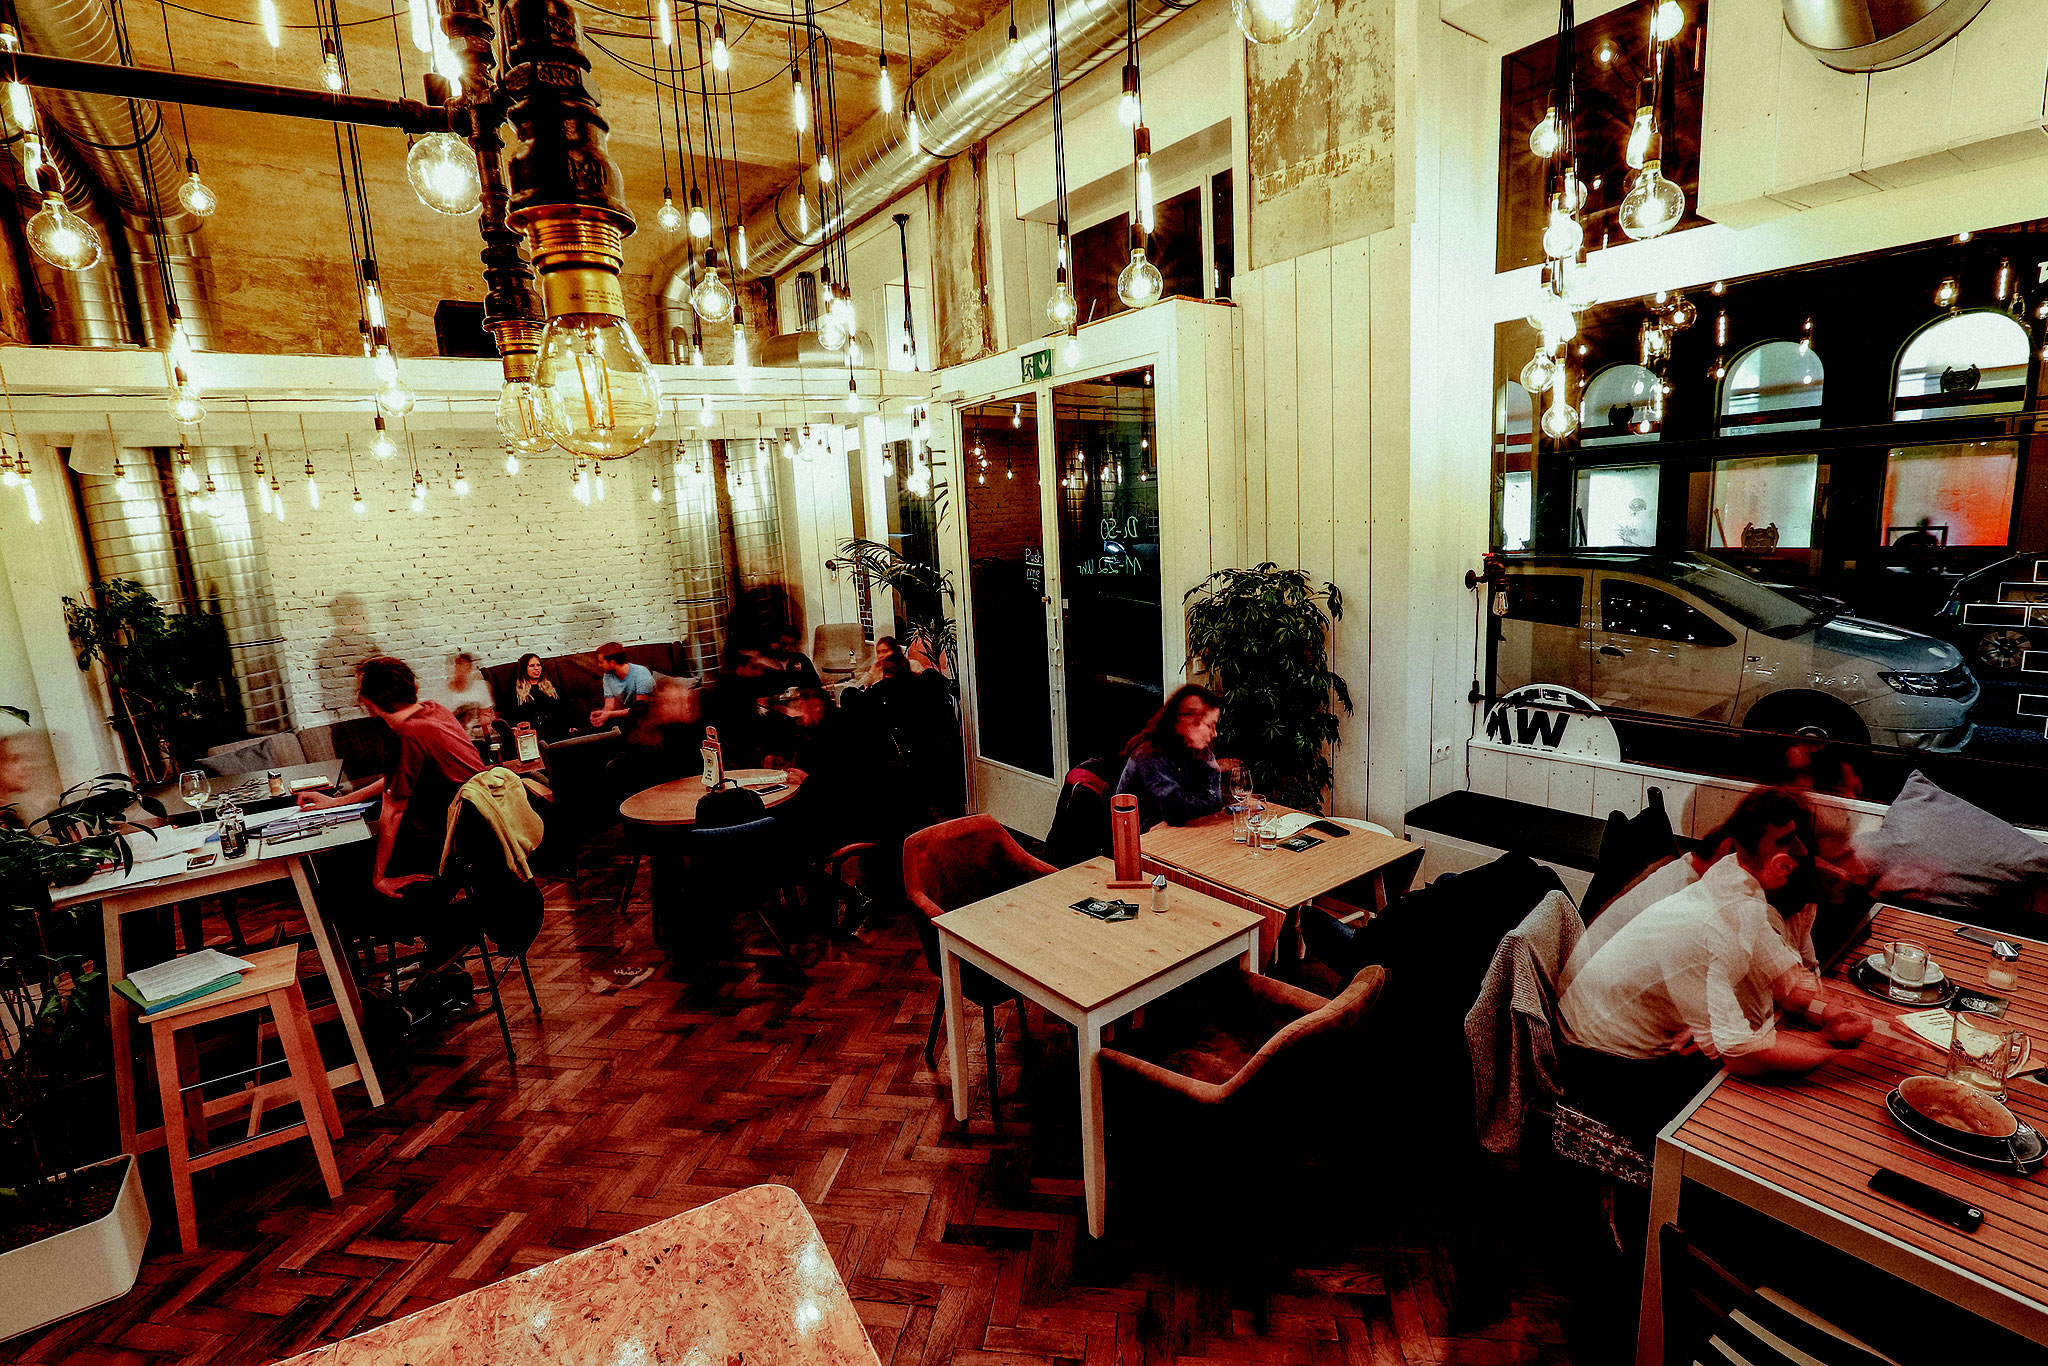 DirtWater NGO Café in 1070 Wien